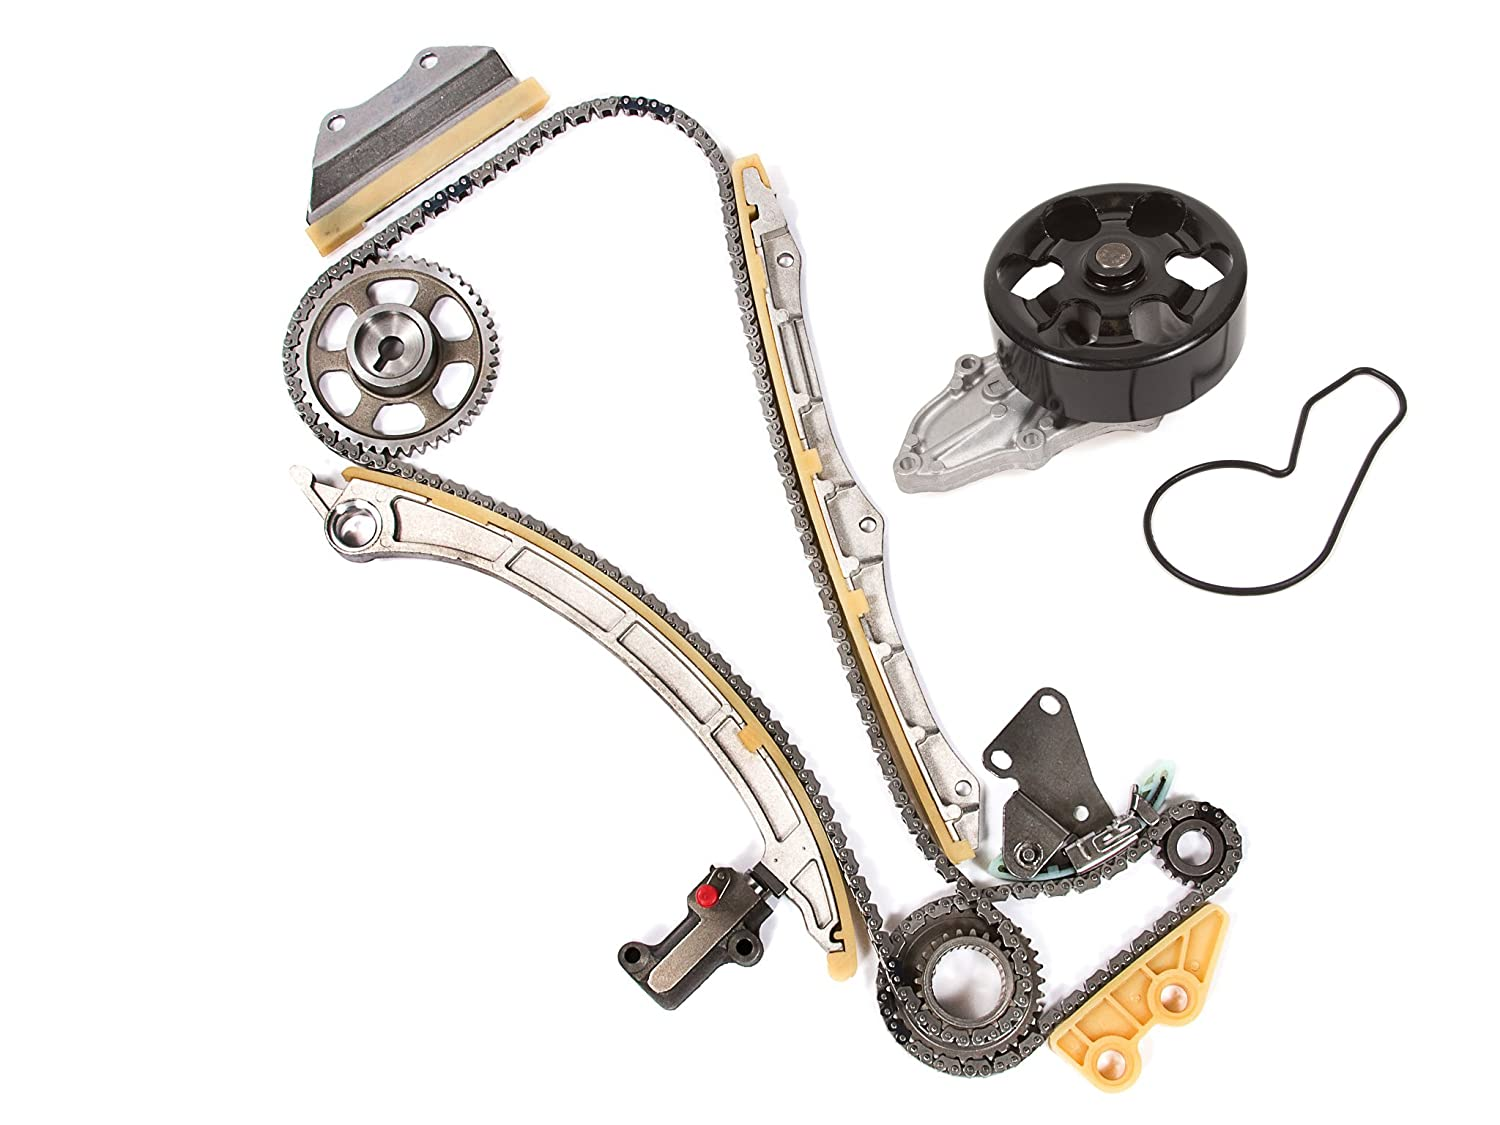 amazon com: evergreen tk4041wpt honda cr-v k24a1 timing chain kit water  pump (with gears): automotive